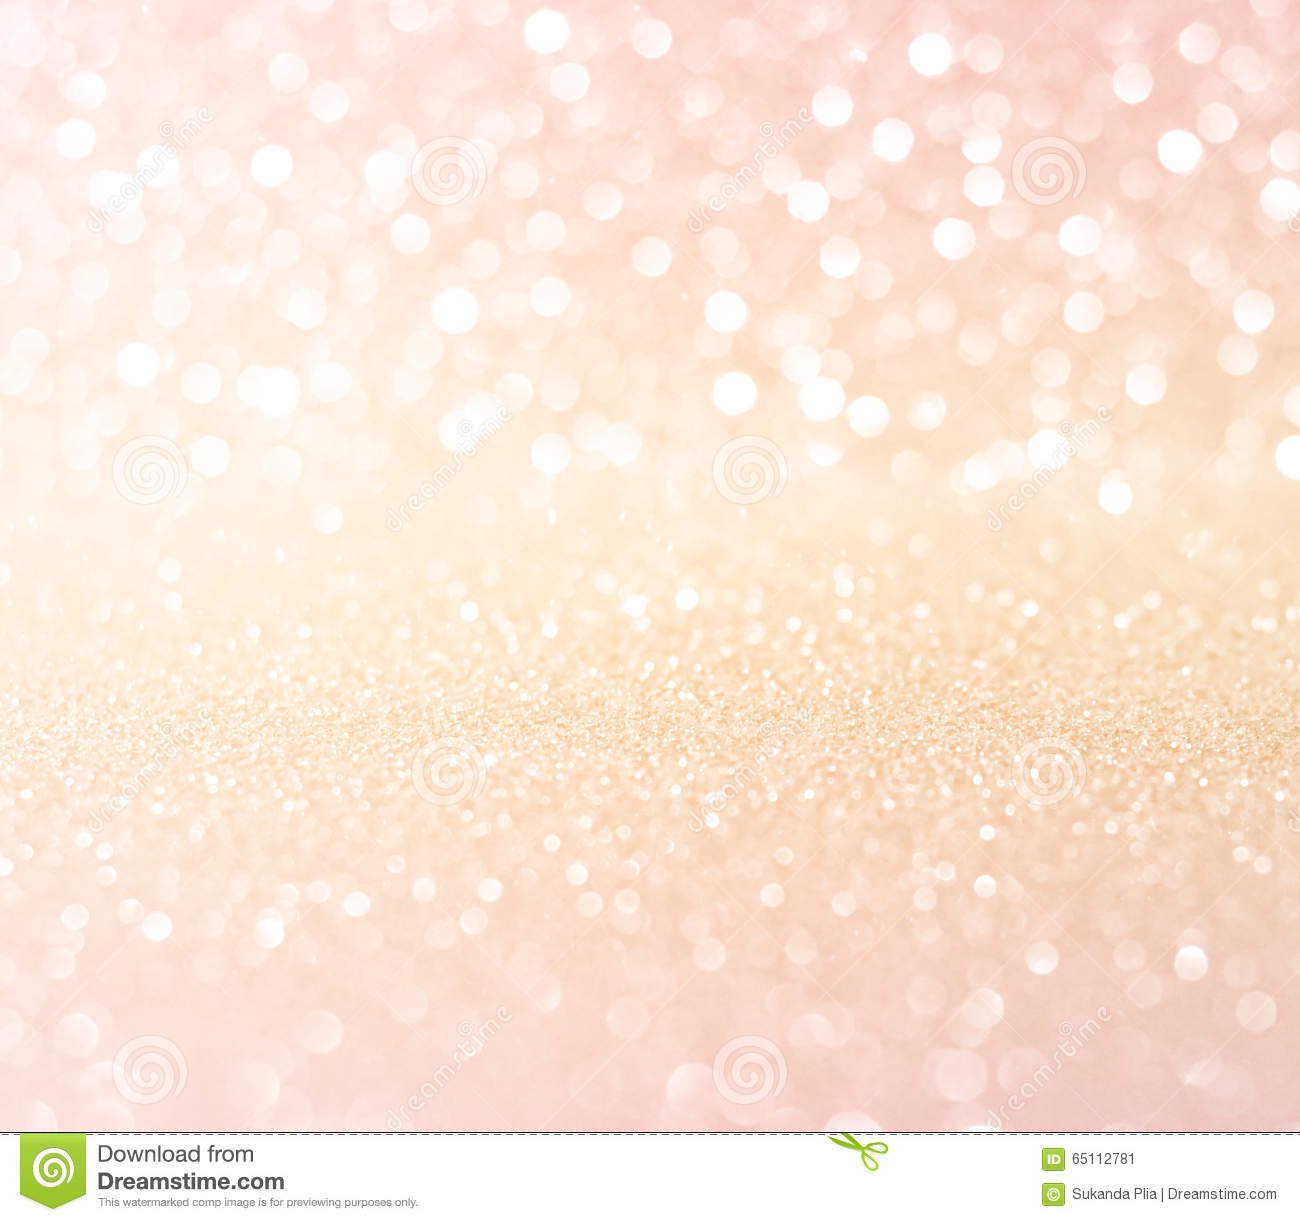 Cute Girly Life Wallpaper White Pink Gold Glitter Bokeh Texture Christmas Abstract